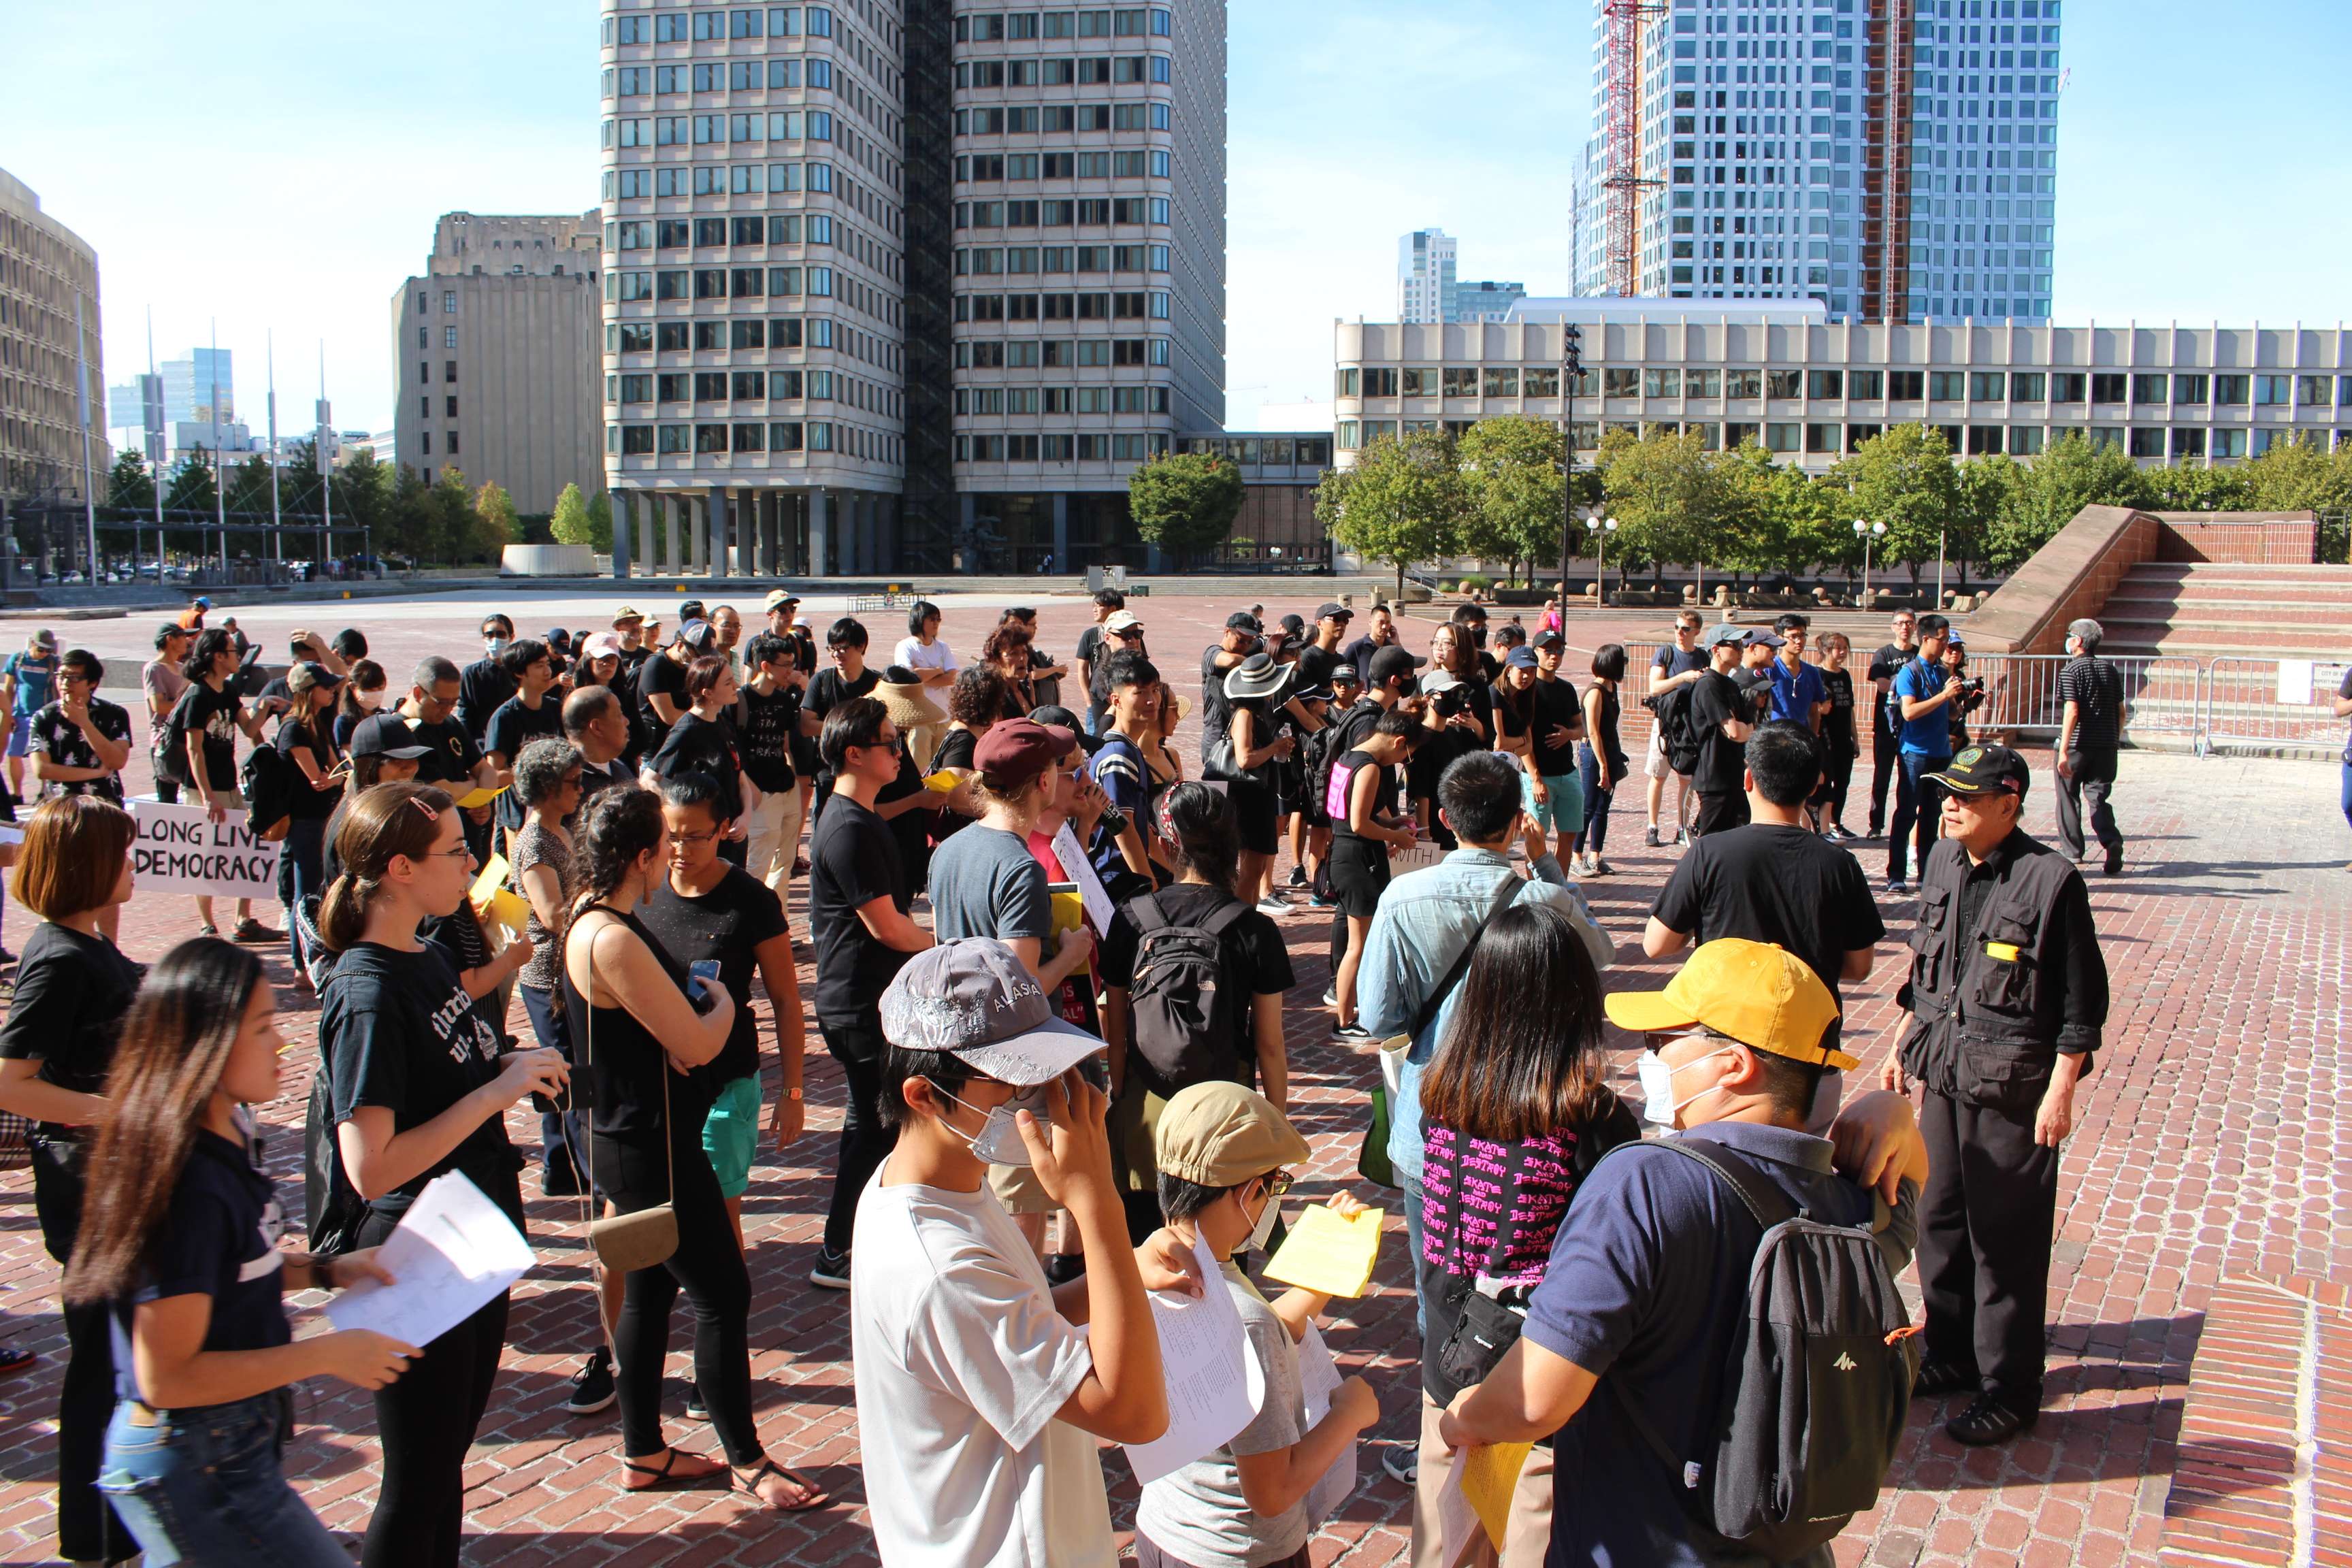 Crowds gathered in City Hall Plaza on Sept. 22 in solidarity with protestors in Hong Kong. Photo by Lex Weaver.